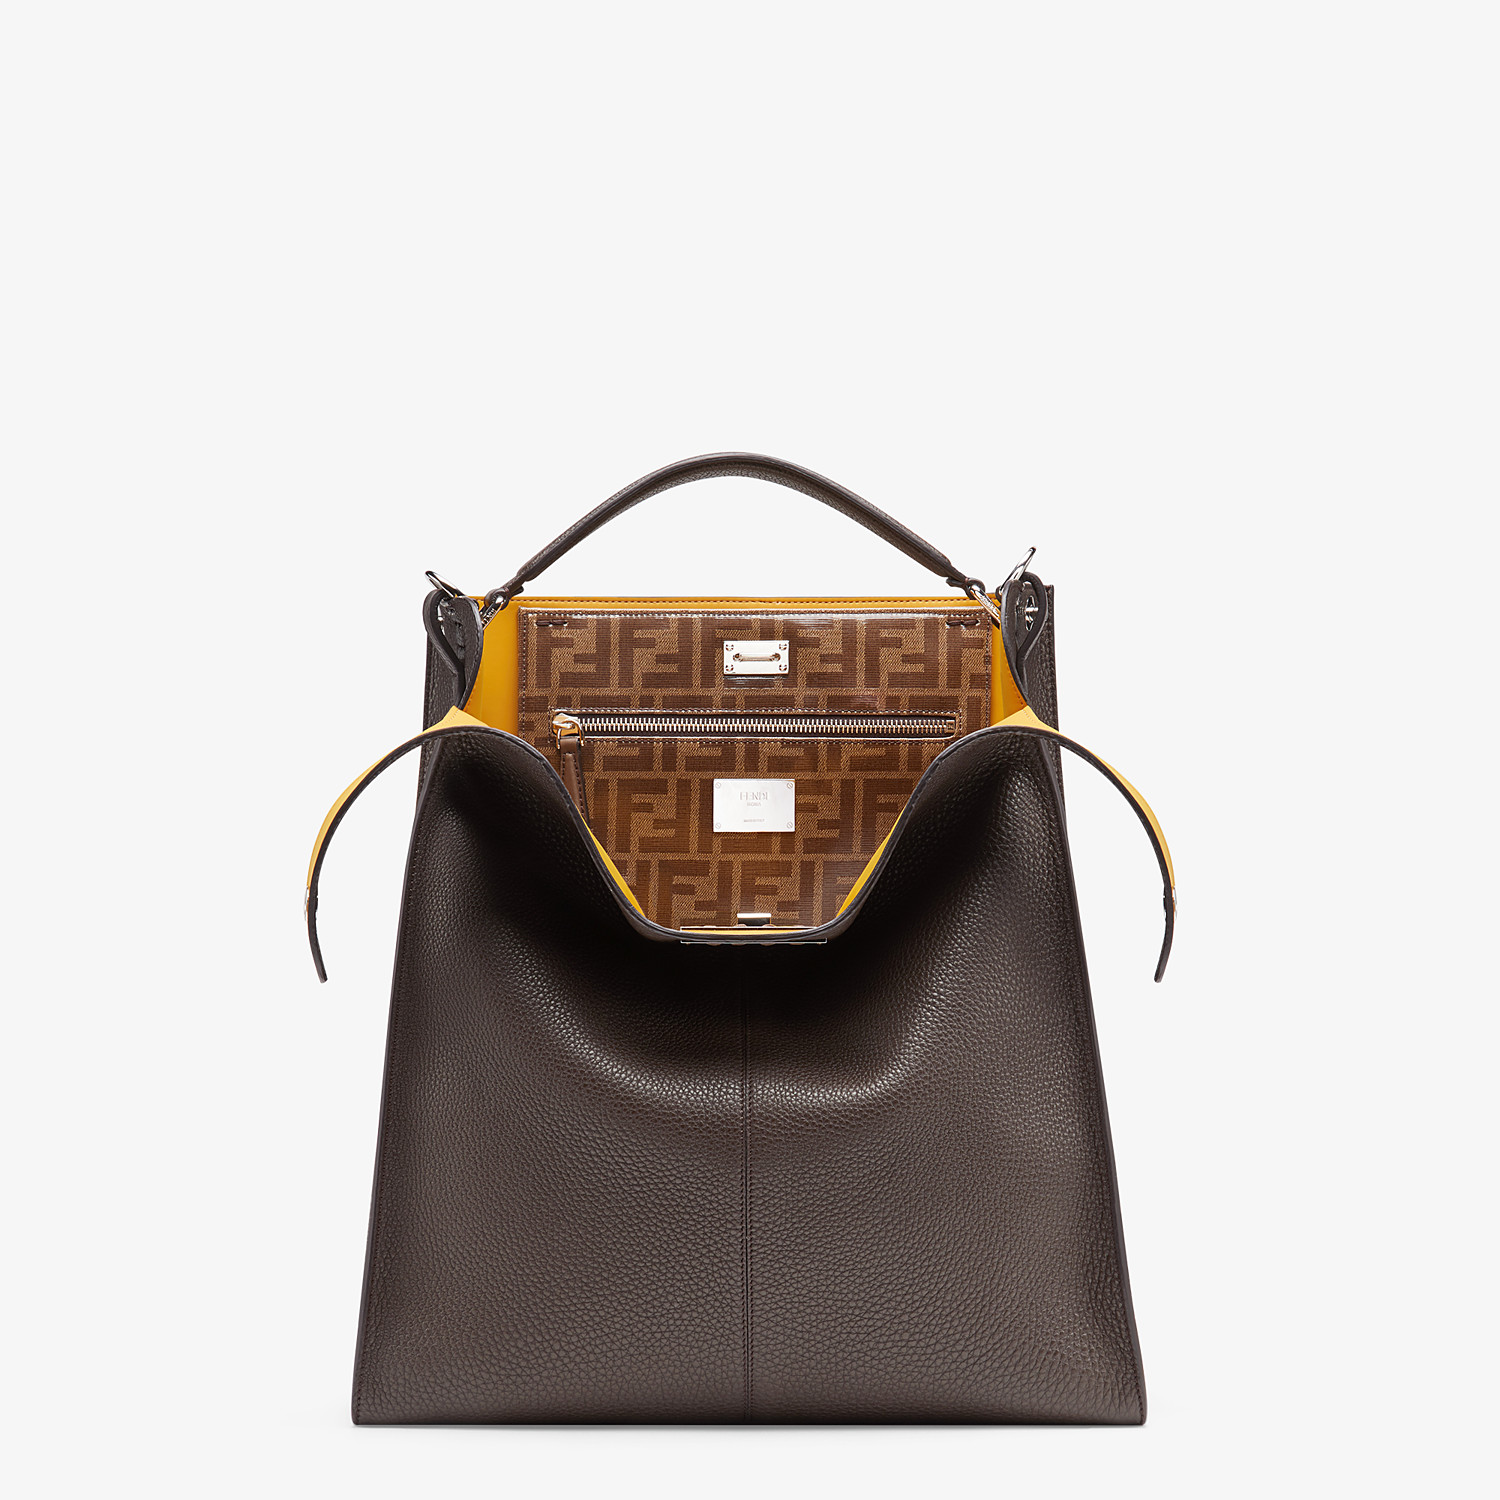 FENDI PEEKABOO X-LITE FIT - Brown leather bag - view 1 detail